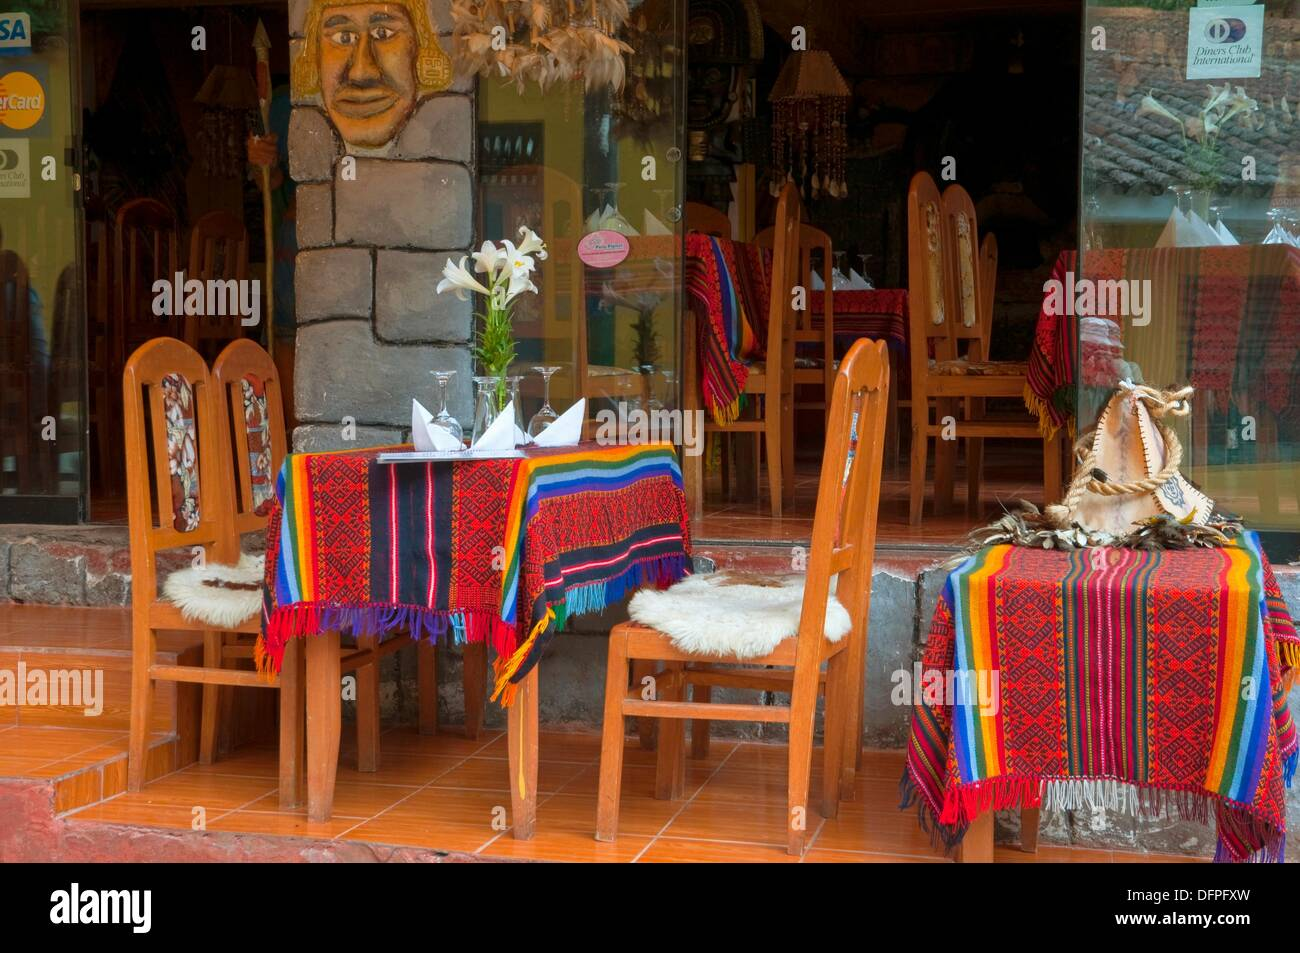 Colorful Outdoor Restaurant Table Settings And Tablecloths In Agua  Calientes, Peru